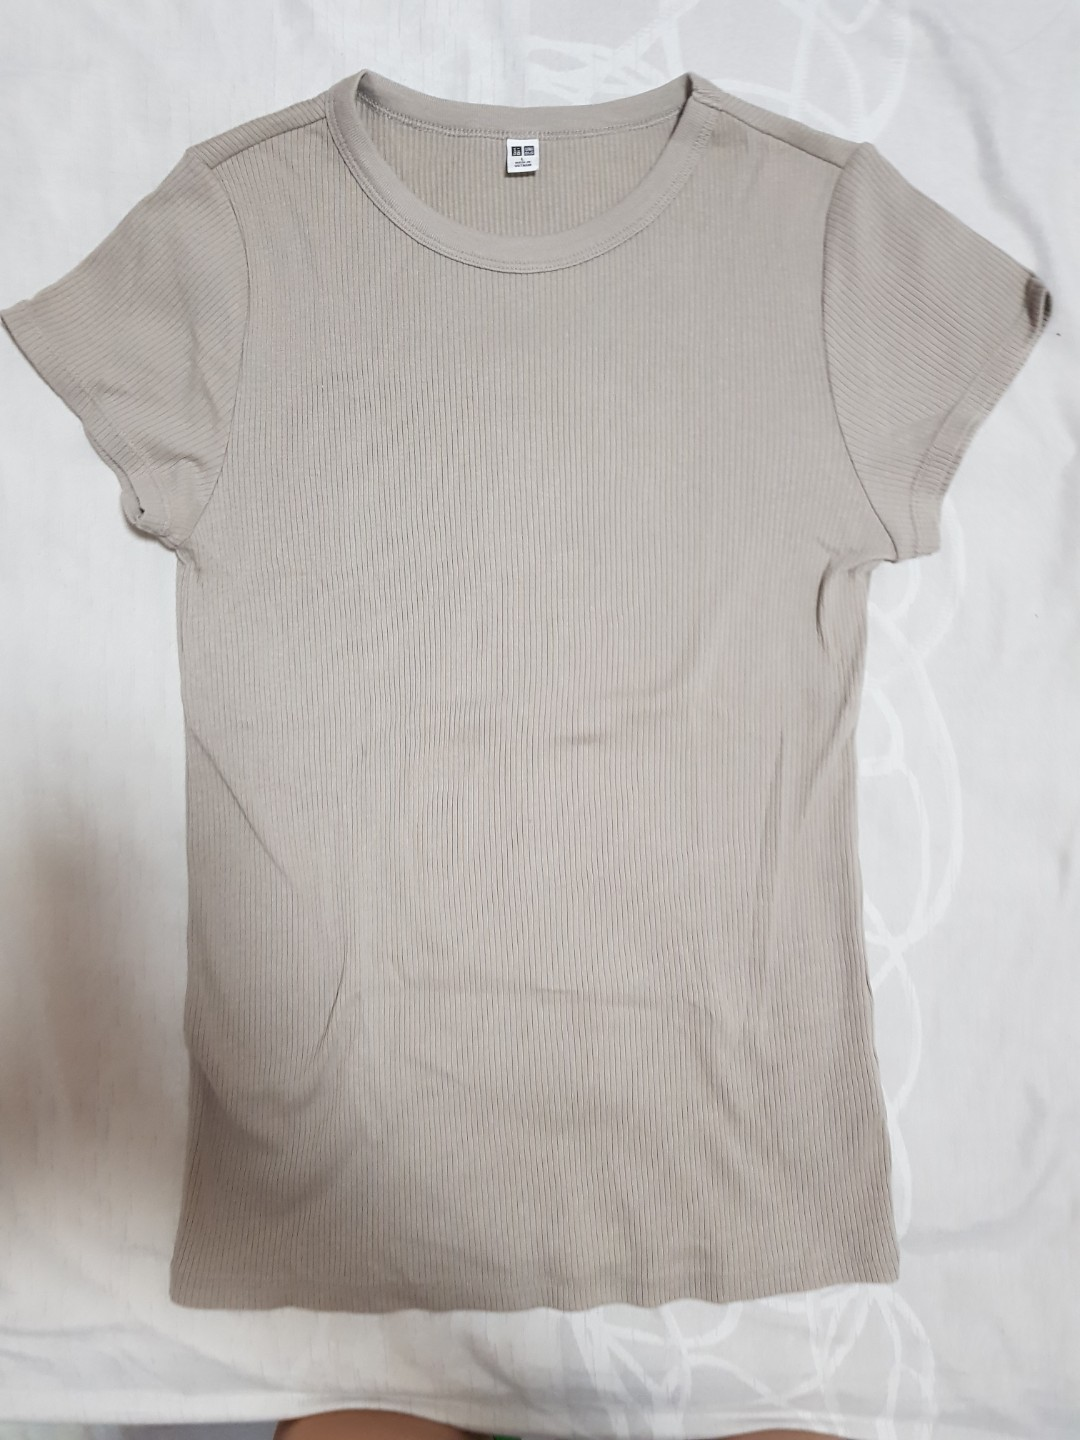 3b7ef5a91a7 Uniqlo Ribbed Top, Women's Fashion, Clothes, Tops on Carousell